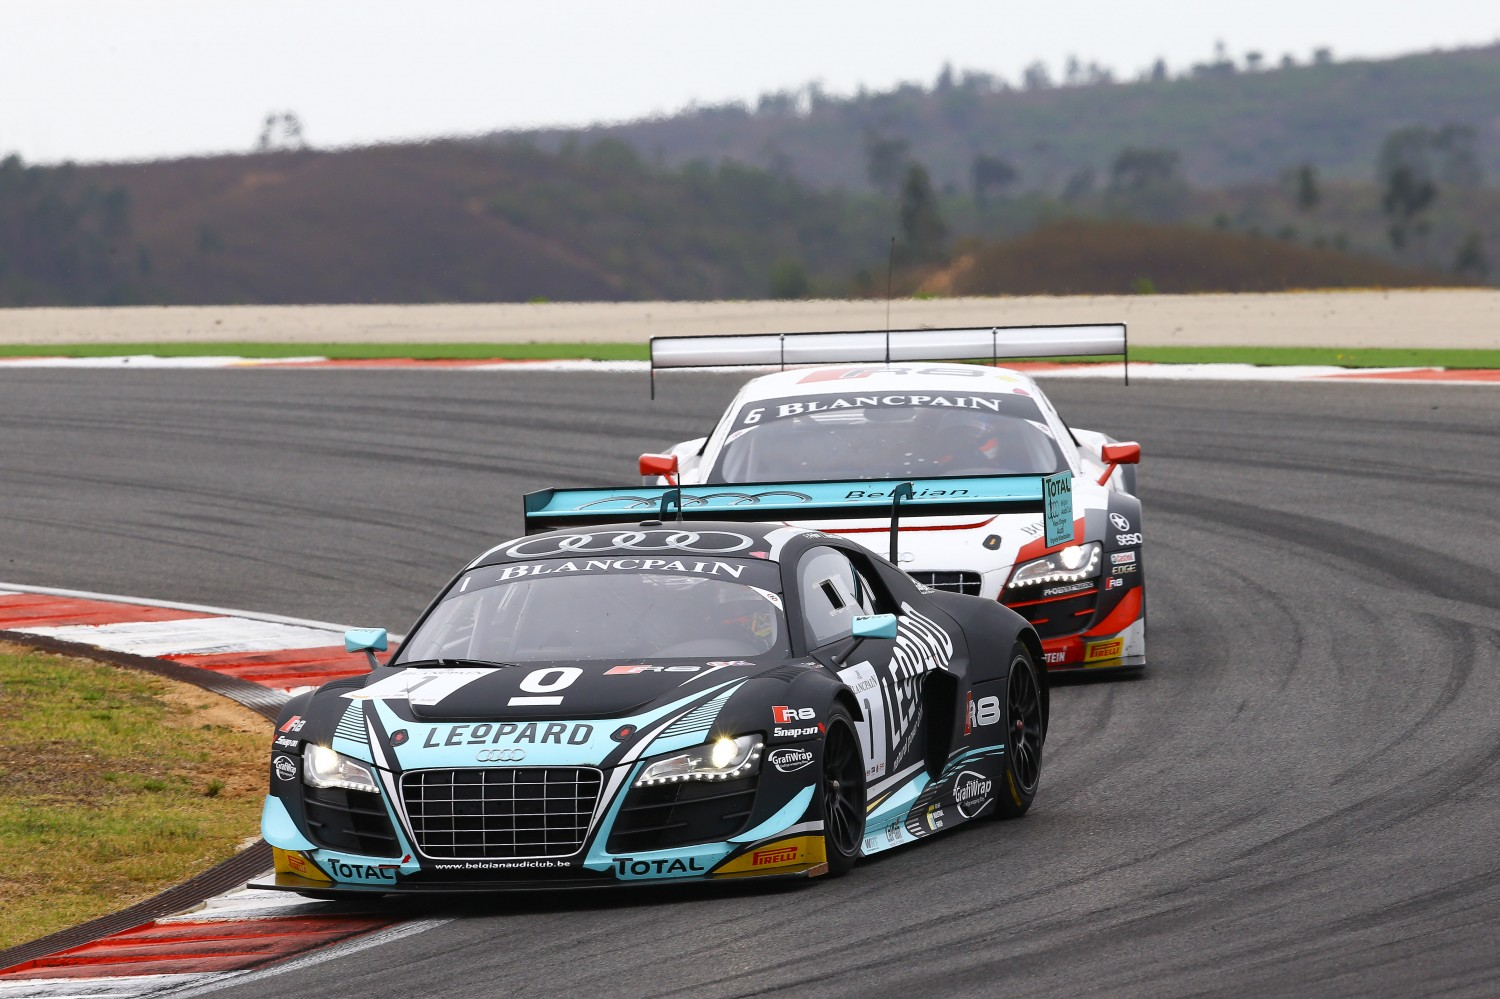 Frijns and Vanthoor put one hand on 2015 Blancpain Sprint Series title